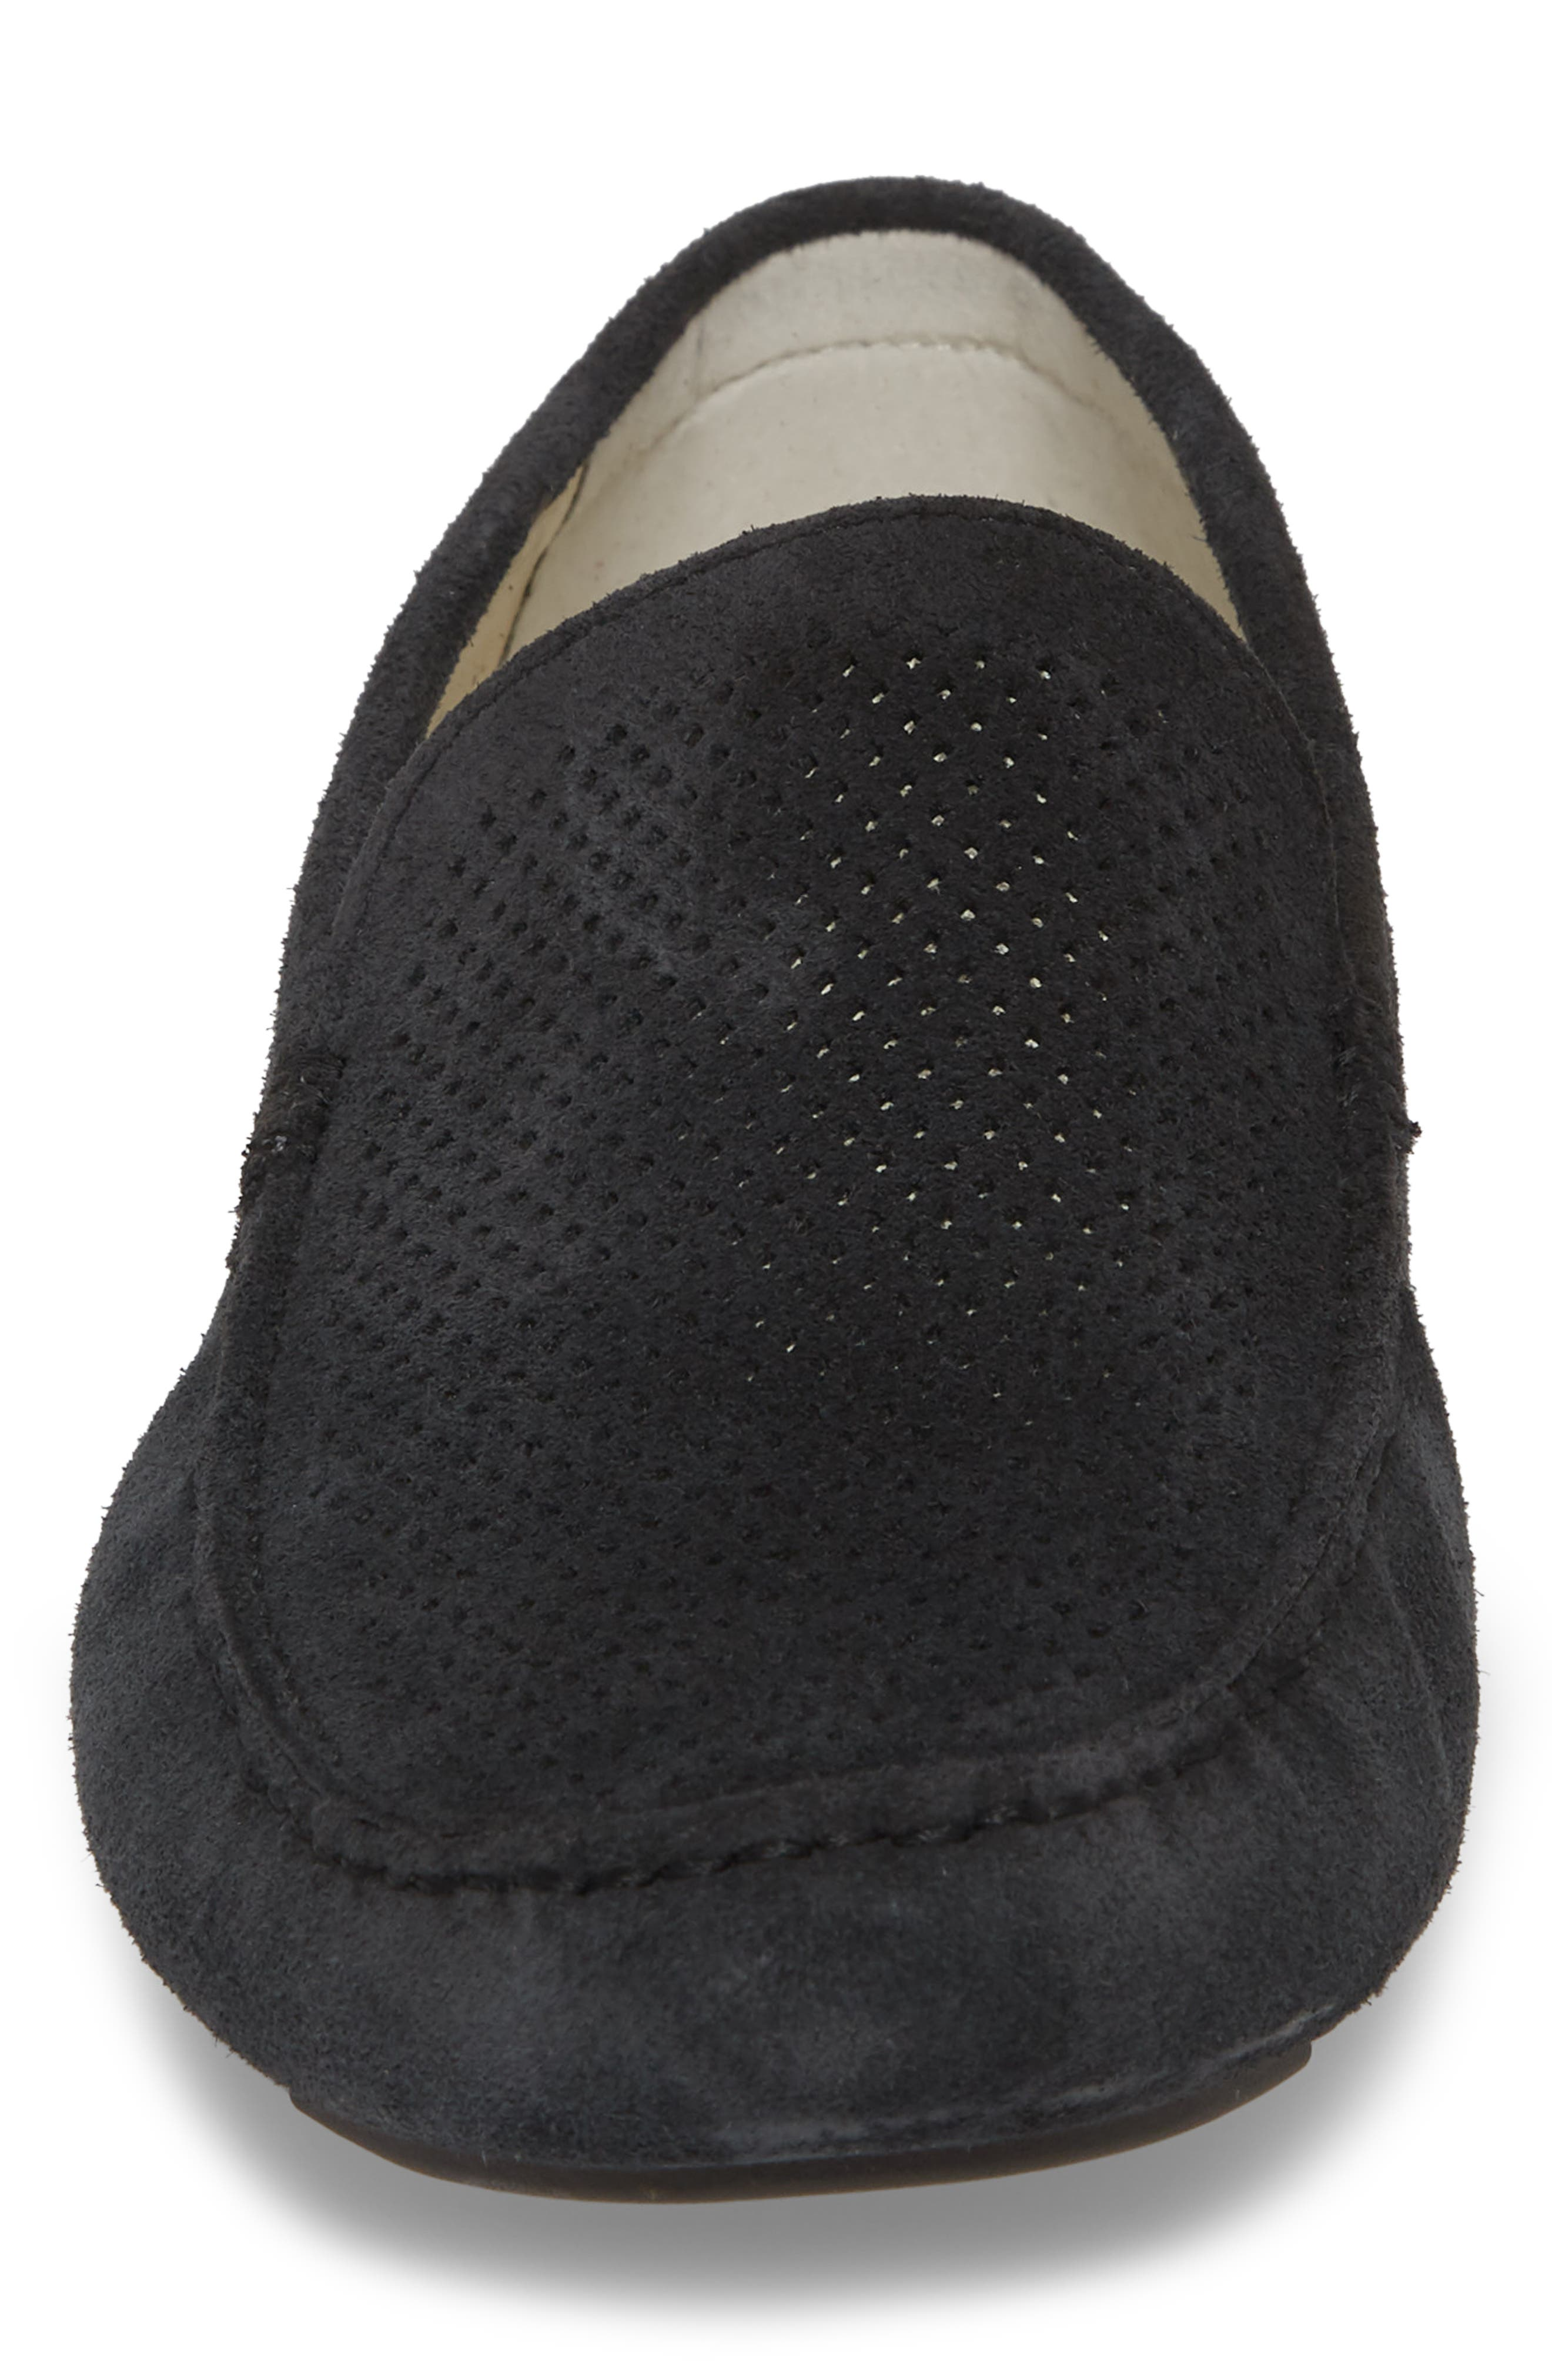 THE RAIL, Scottsdale Perforated Driving Moccasin, Alternate thumbnail 4, color, 001